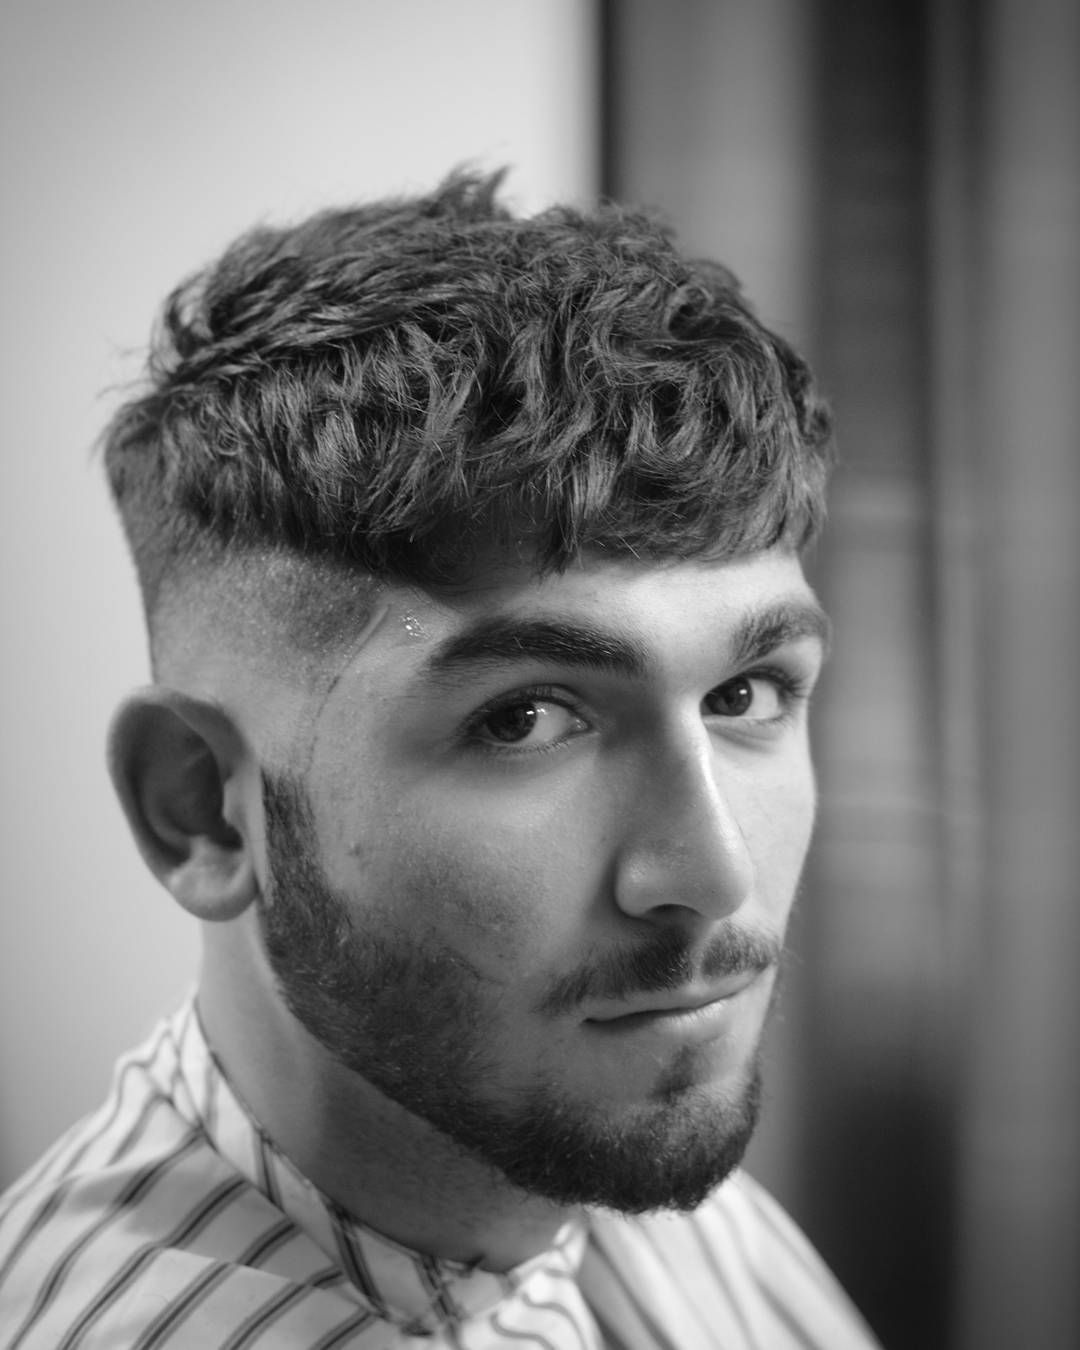 19 cool men's hairstyles you can try in 2018 | mens | pinterest